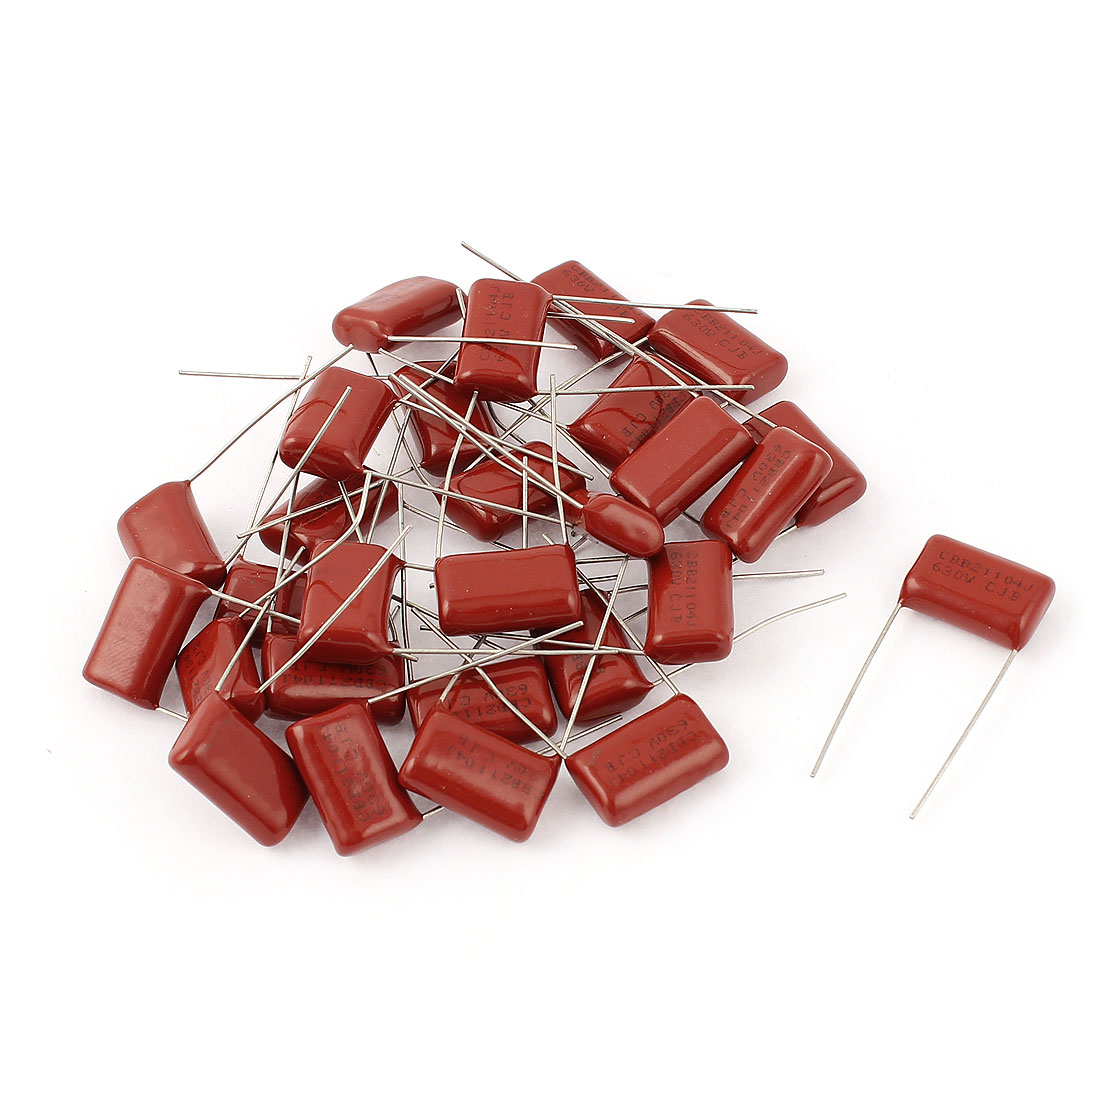 28pcs 104J 630V 0.1uF Electronic Components Metallized Polyester Film Capacitors